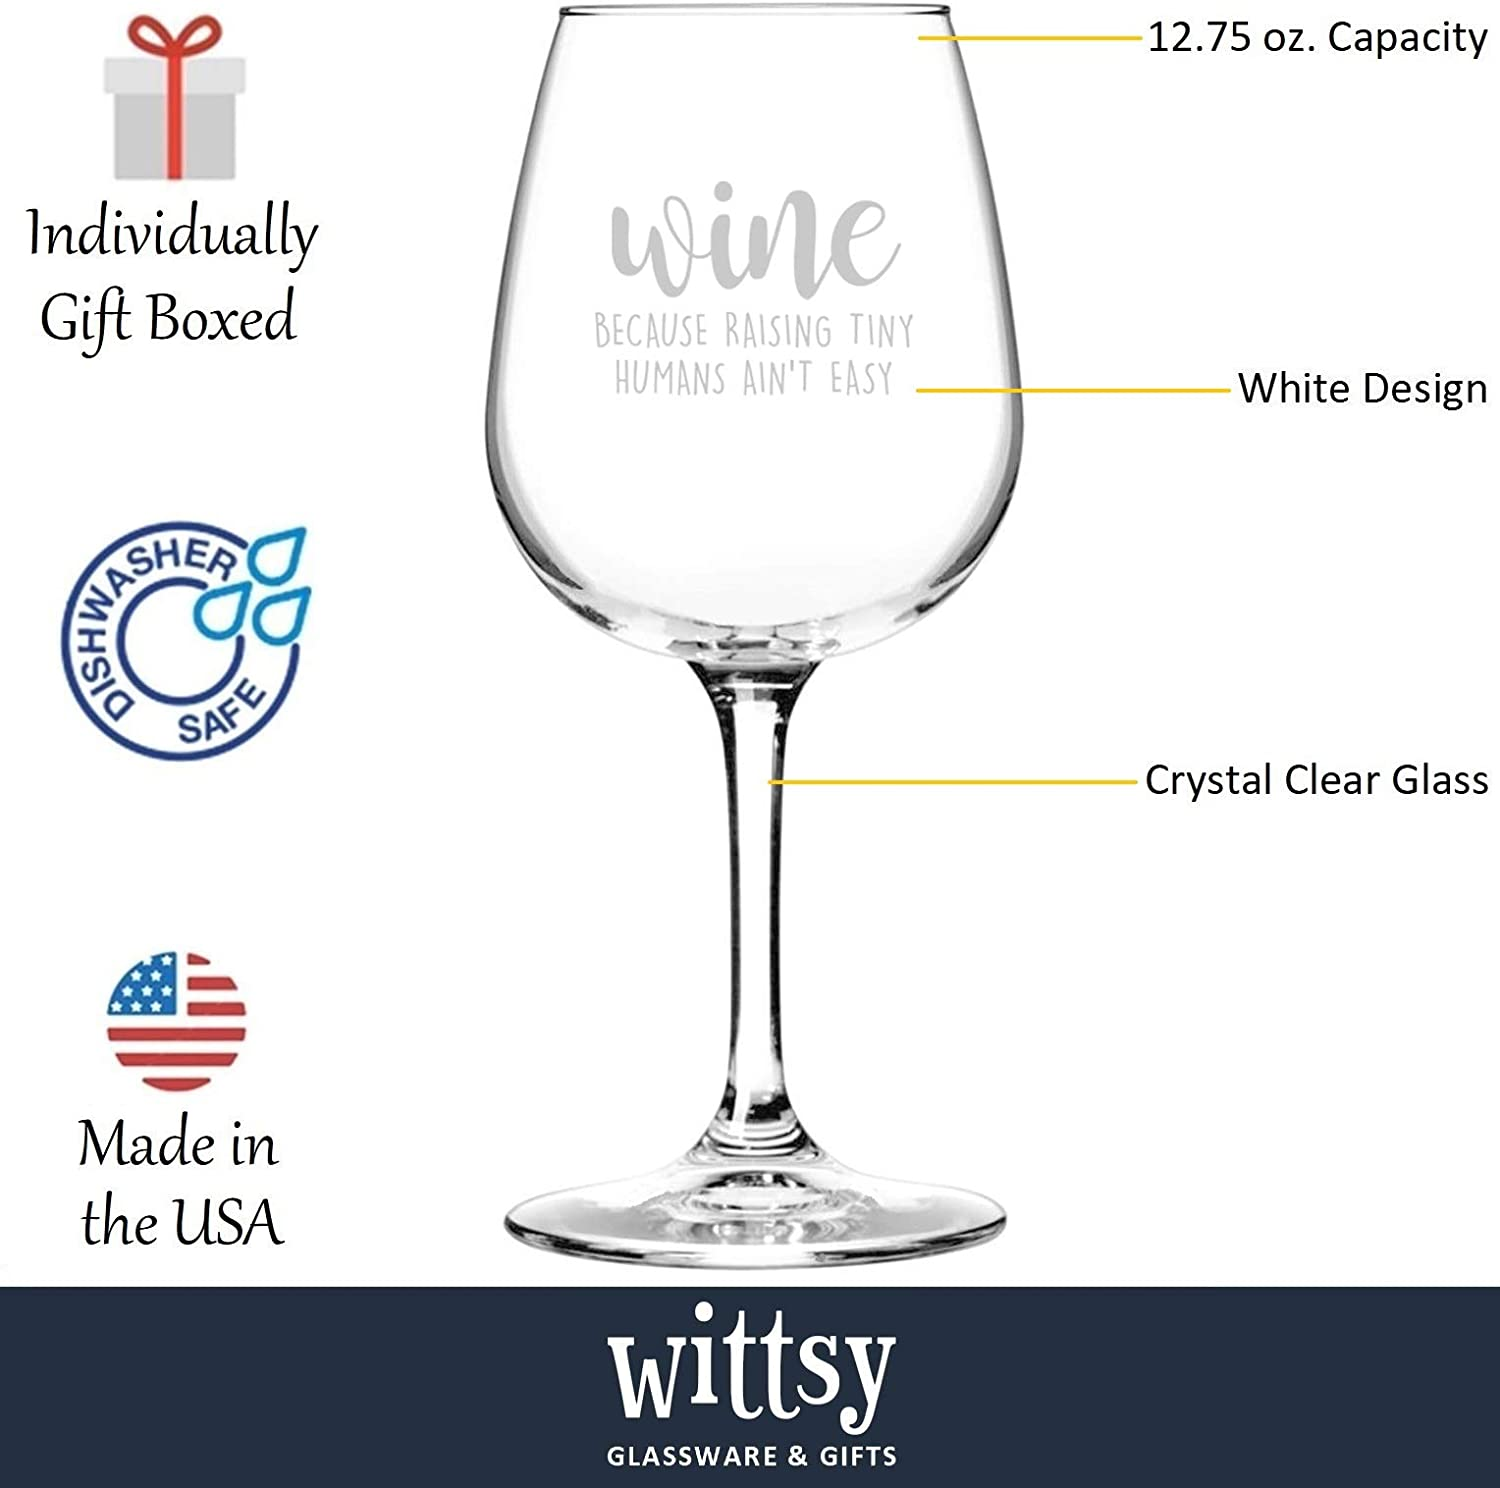 Raising Tiny Humans Funny Wine Glass - Best Christmas Gifts for Mom, Dad, Women, Men - Unique Xmas Gag Gift Idea for Wife from Husband - Fun Novelty ...